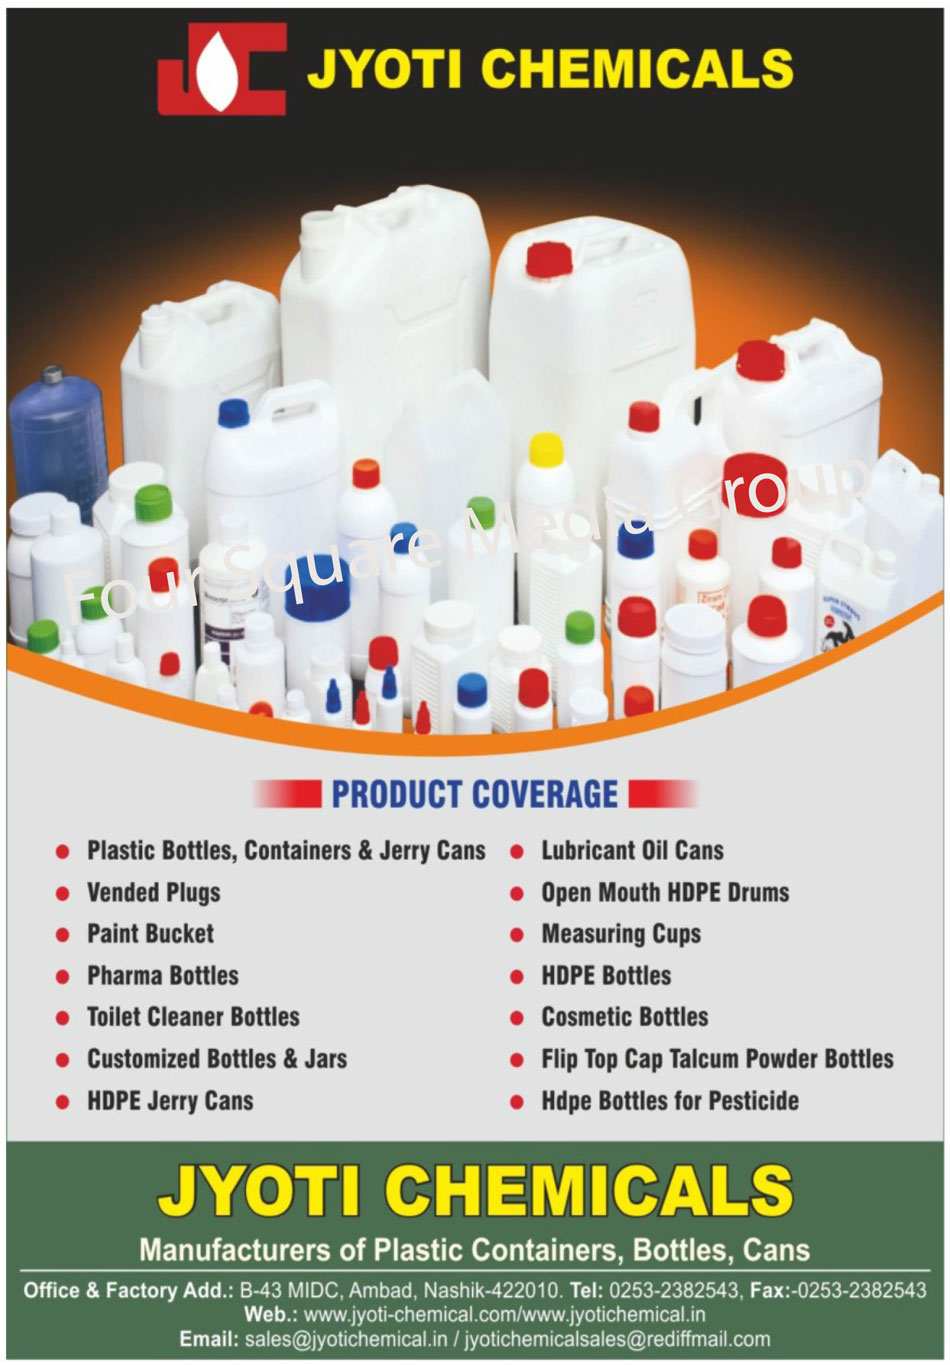 Plastic Bottles, Plastic Containers, Jerry Cans, Vended Plugs, Paint Buckets, Pharma Bottles, Toilet Cleaner Bottles, Customized Bottles, Customized Jars, HDPE Jerry Cans, Lubricant Oil Cans, Open Mouth HDPE Drums, Measuring Cups, HDPE Bottles, Cosmetic Bottles, Flip Top Cap Talcum Powder Bottles, HDPE Bottles for Pesticide